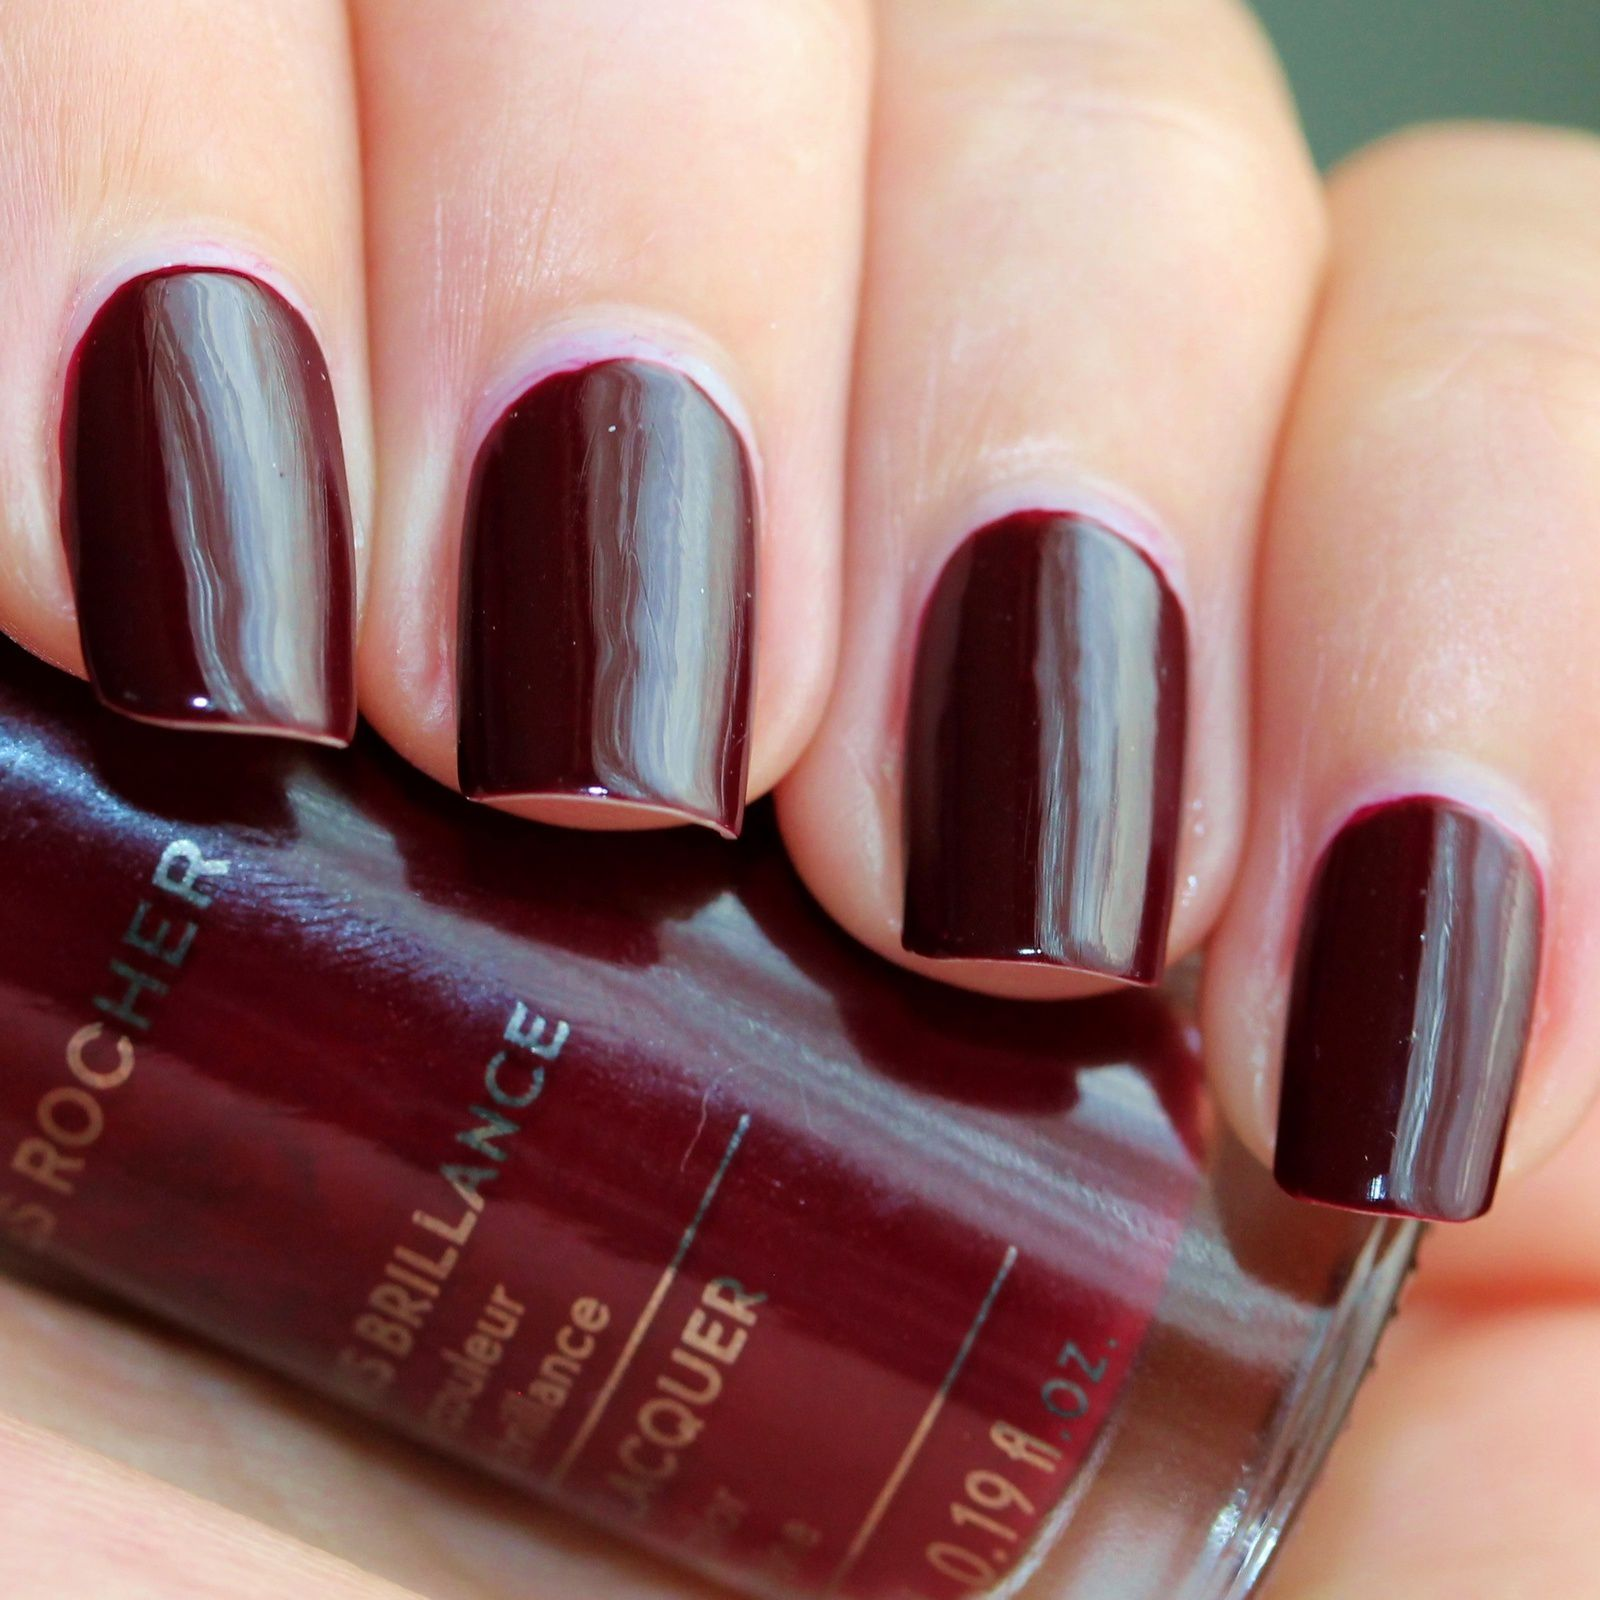 Essie Protein Base Coat / Yves Rocher 103 Rubis (Ruby Red) / Sally Hansen Miracle Gel Top Coat